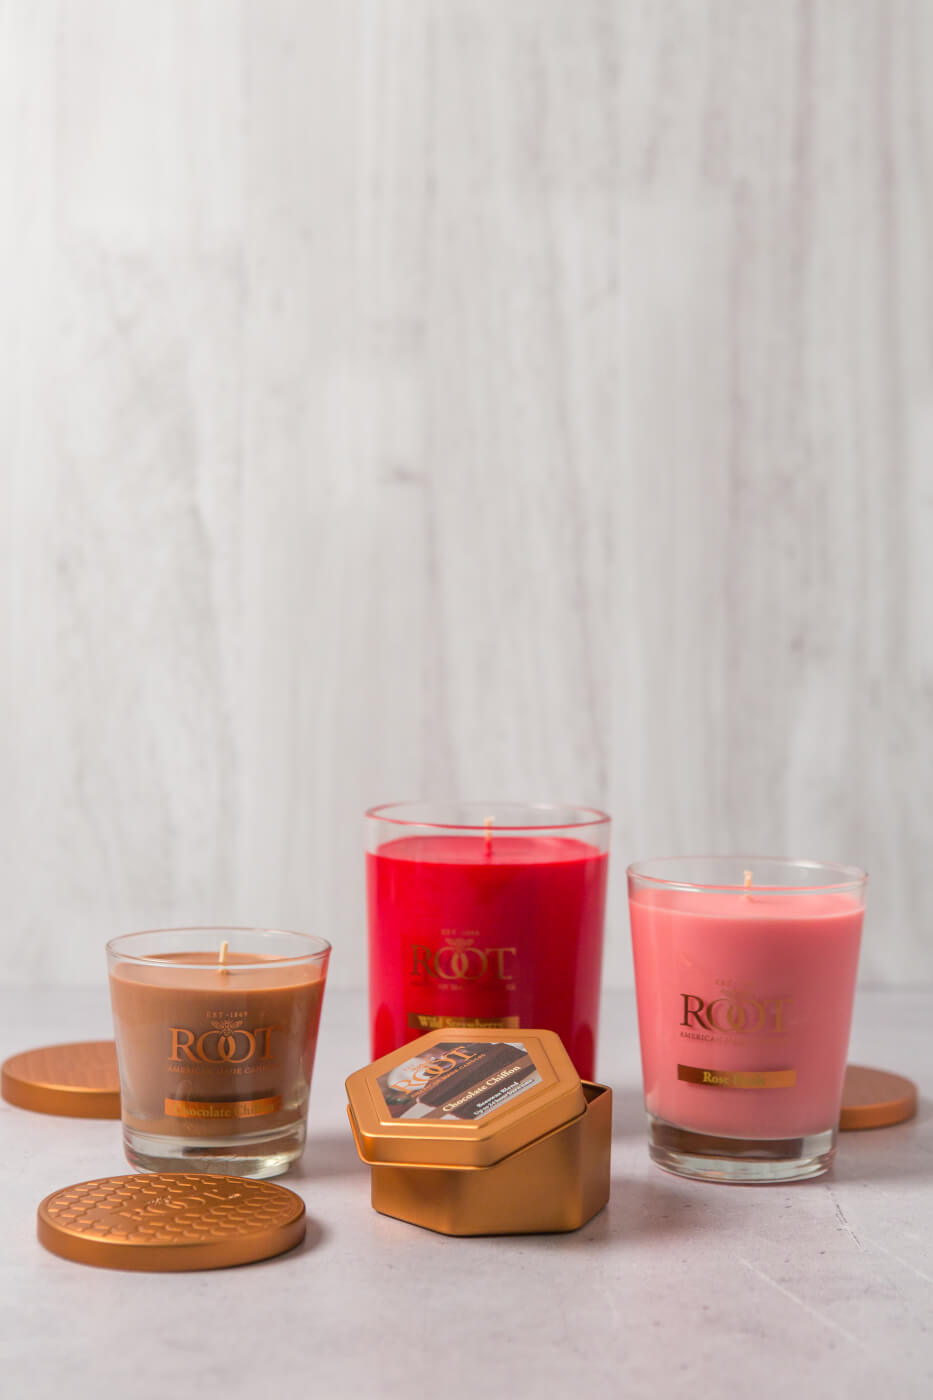 Group of pink and red candles from Root Candles